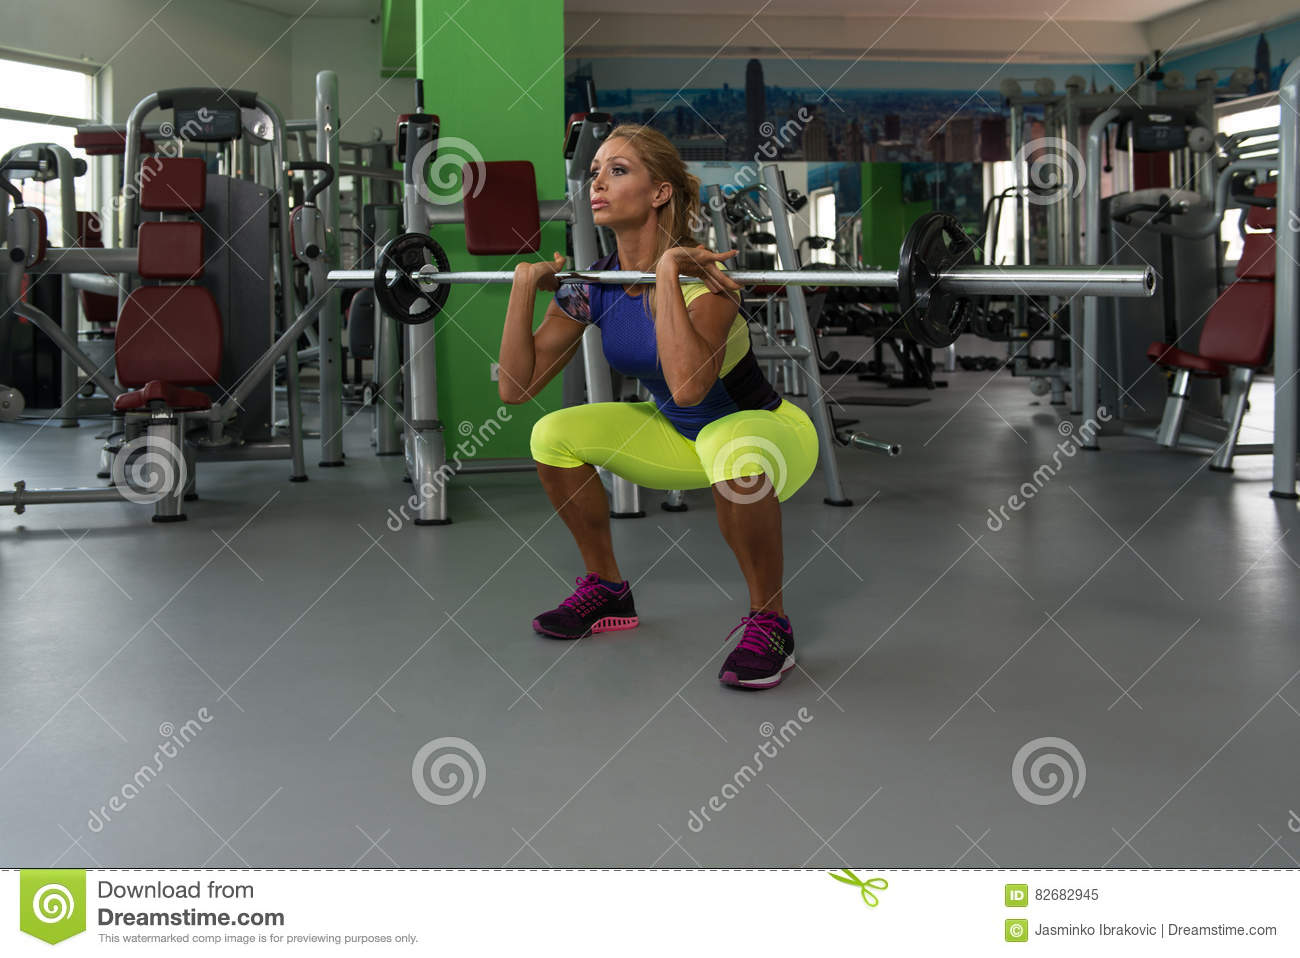 Healthy Fitness Woman Working Out Legs With Barbell In A Gym Squat Exercise Muscular Athletic Bodybuilder Fitness Model